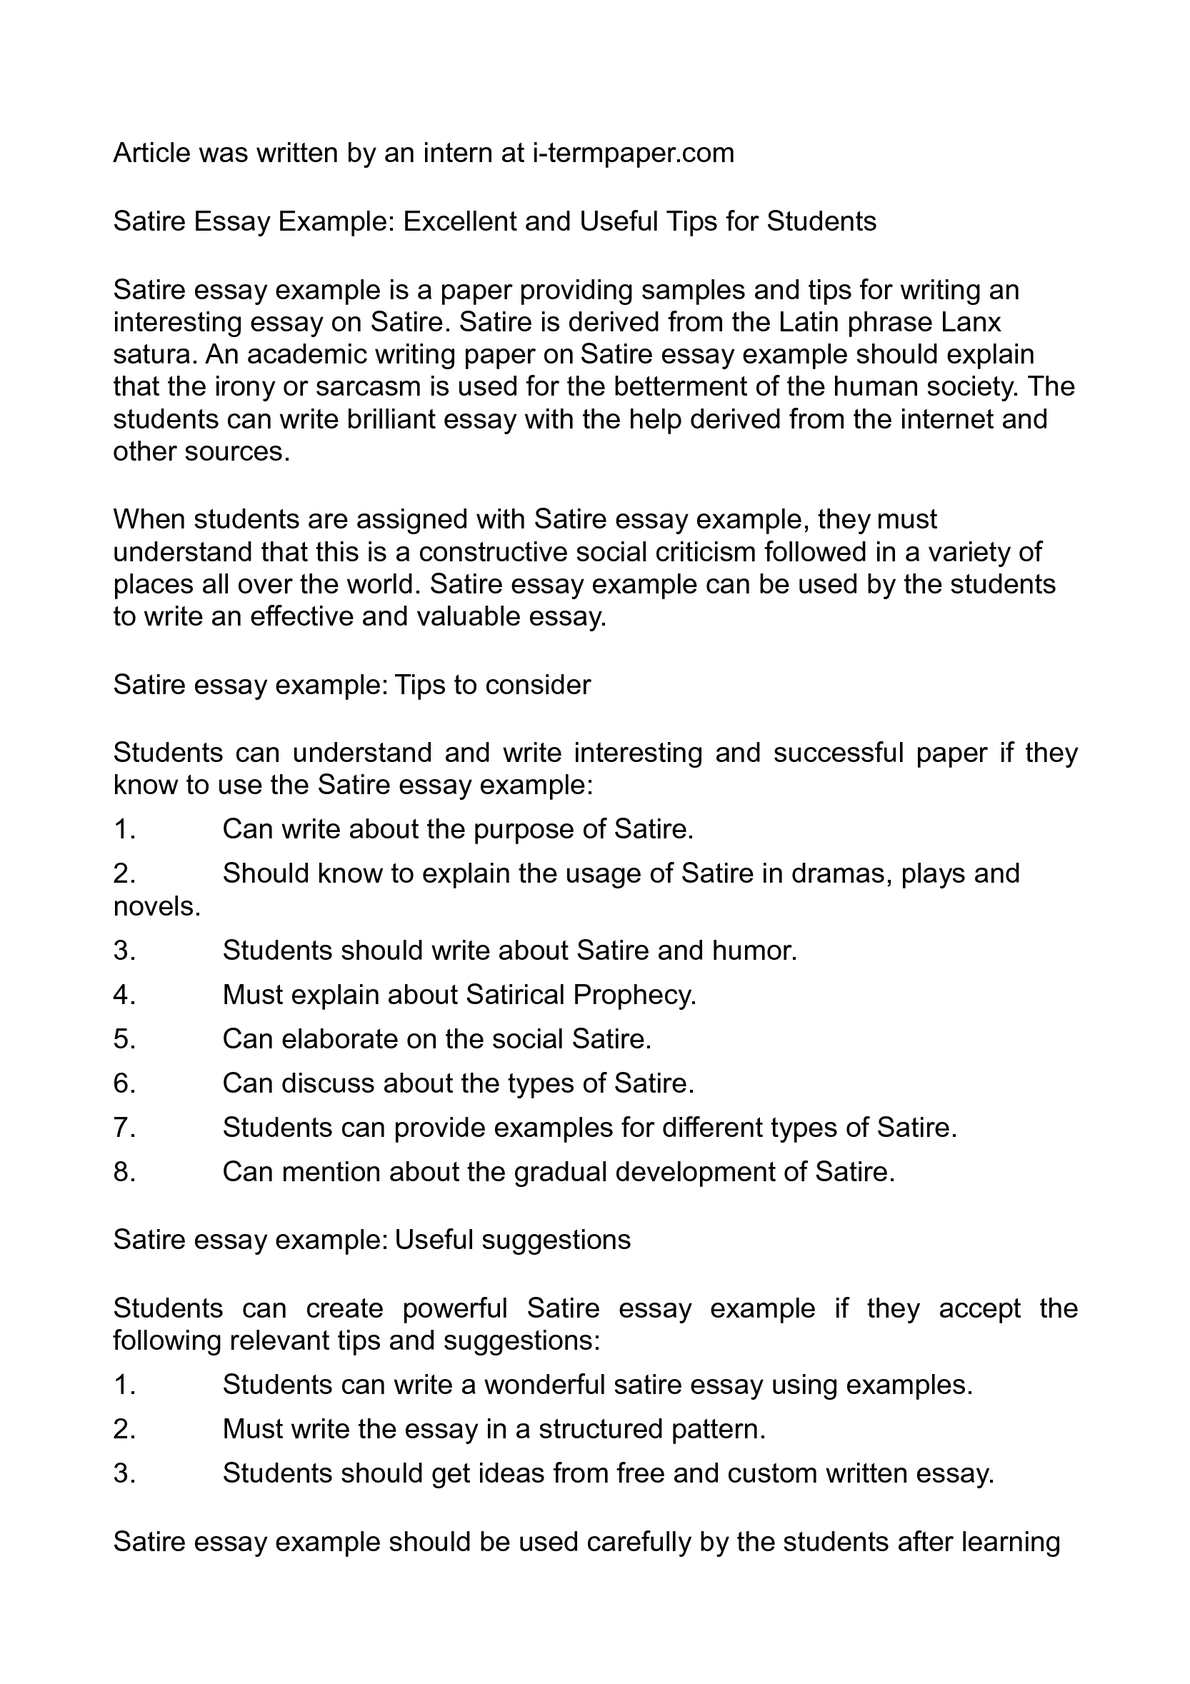 Satirical essay